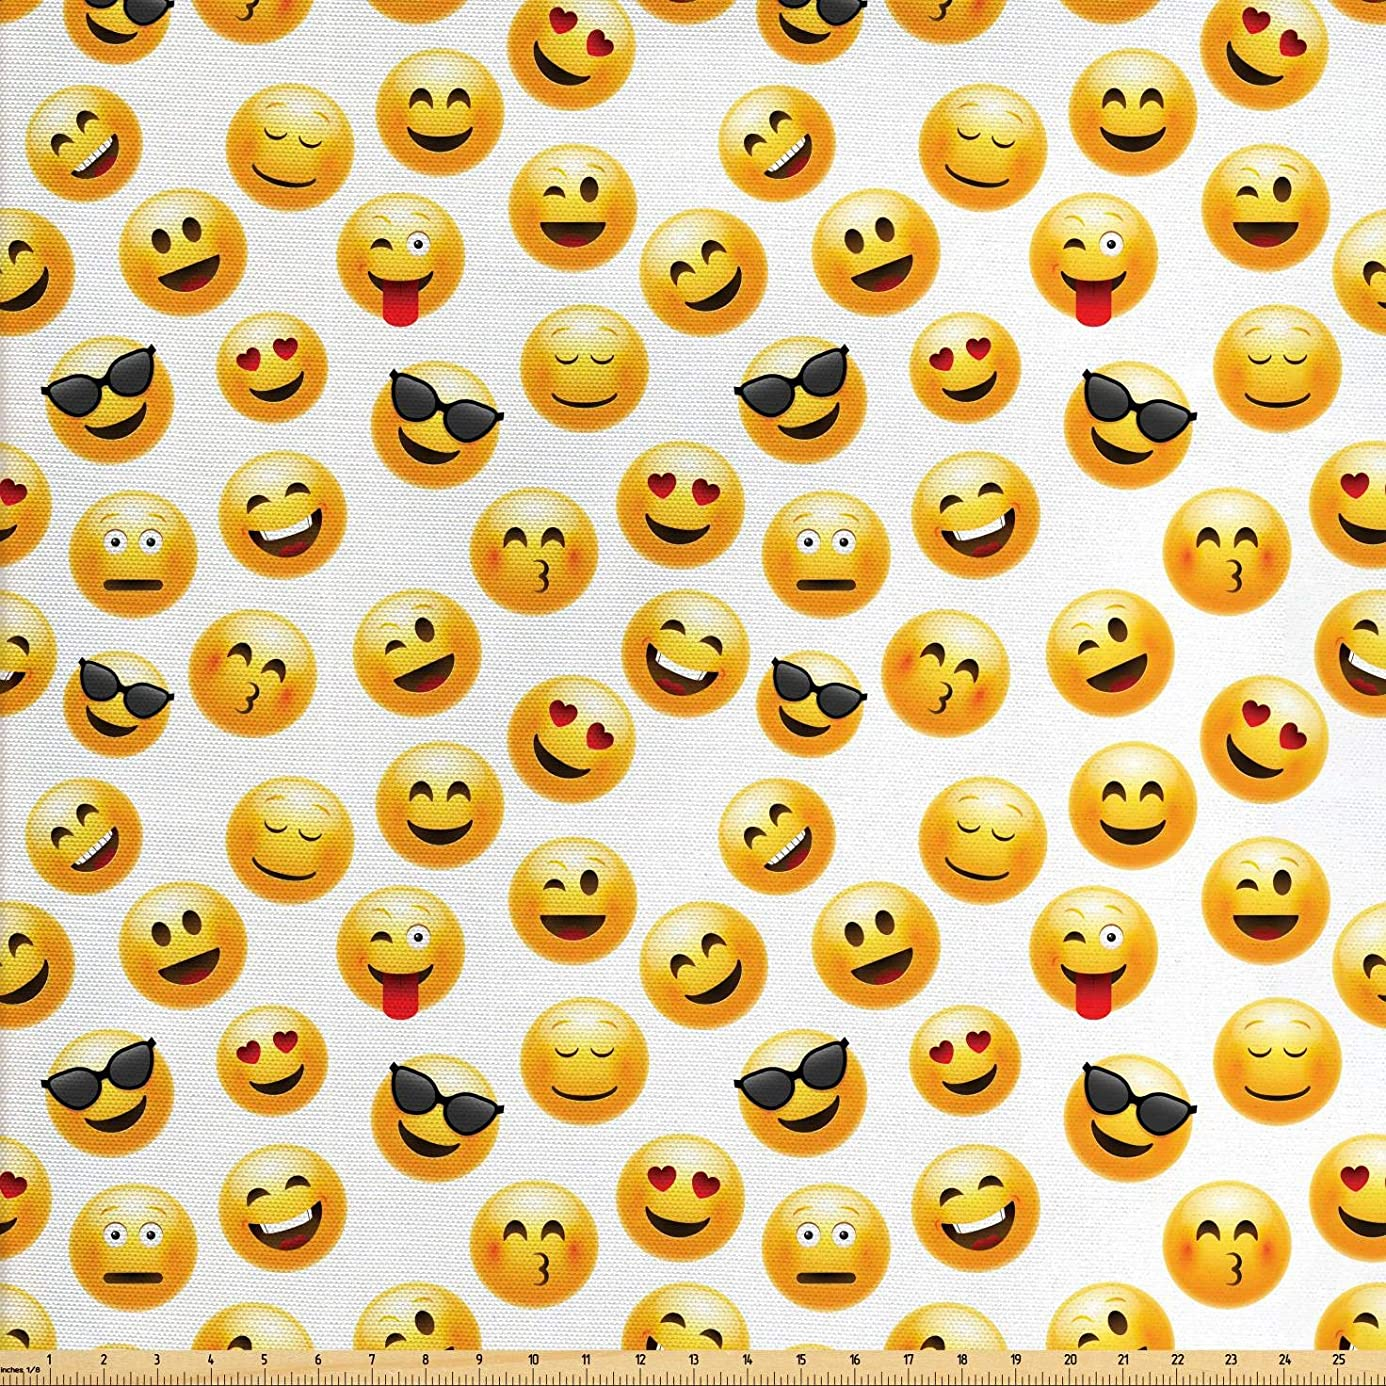 Ambesonne Emoji Fabric by The Yard, Smiley Face Character Illustration Feeling Happy Surprised Cool and in Love, Decorative Fabric for Upholstery and Home Accents, 1 Yard, Yellow Red Black nkn4141778